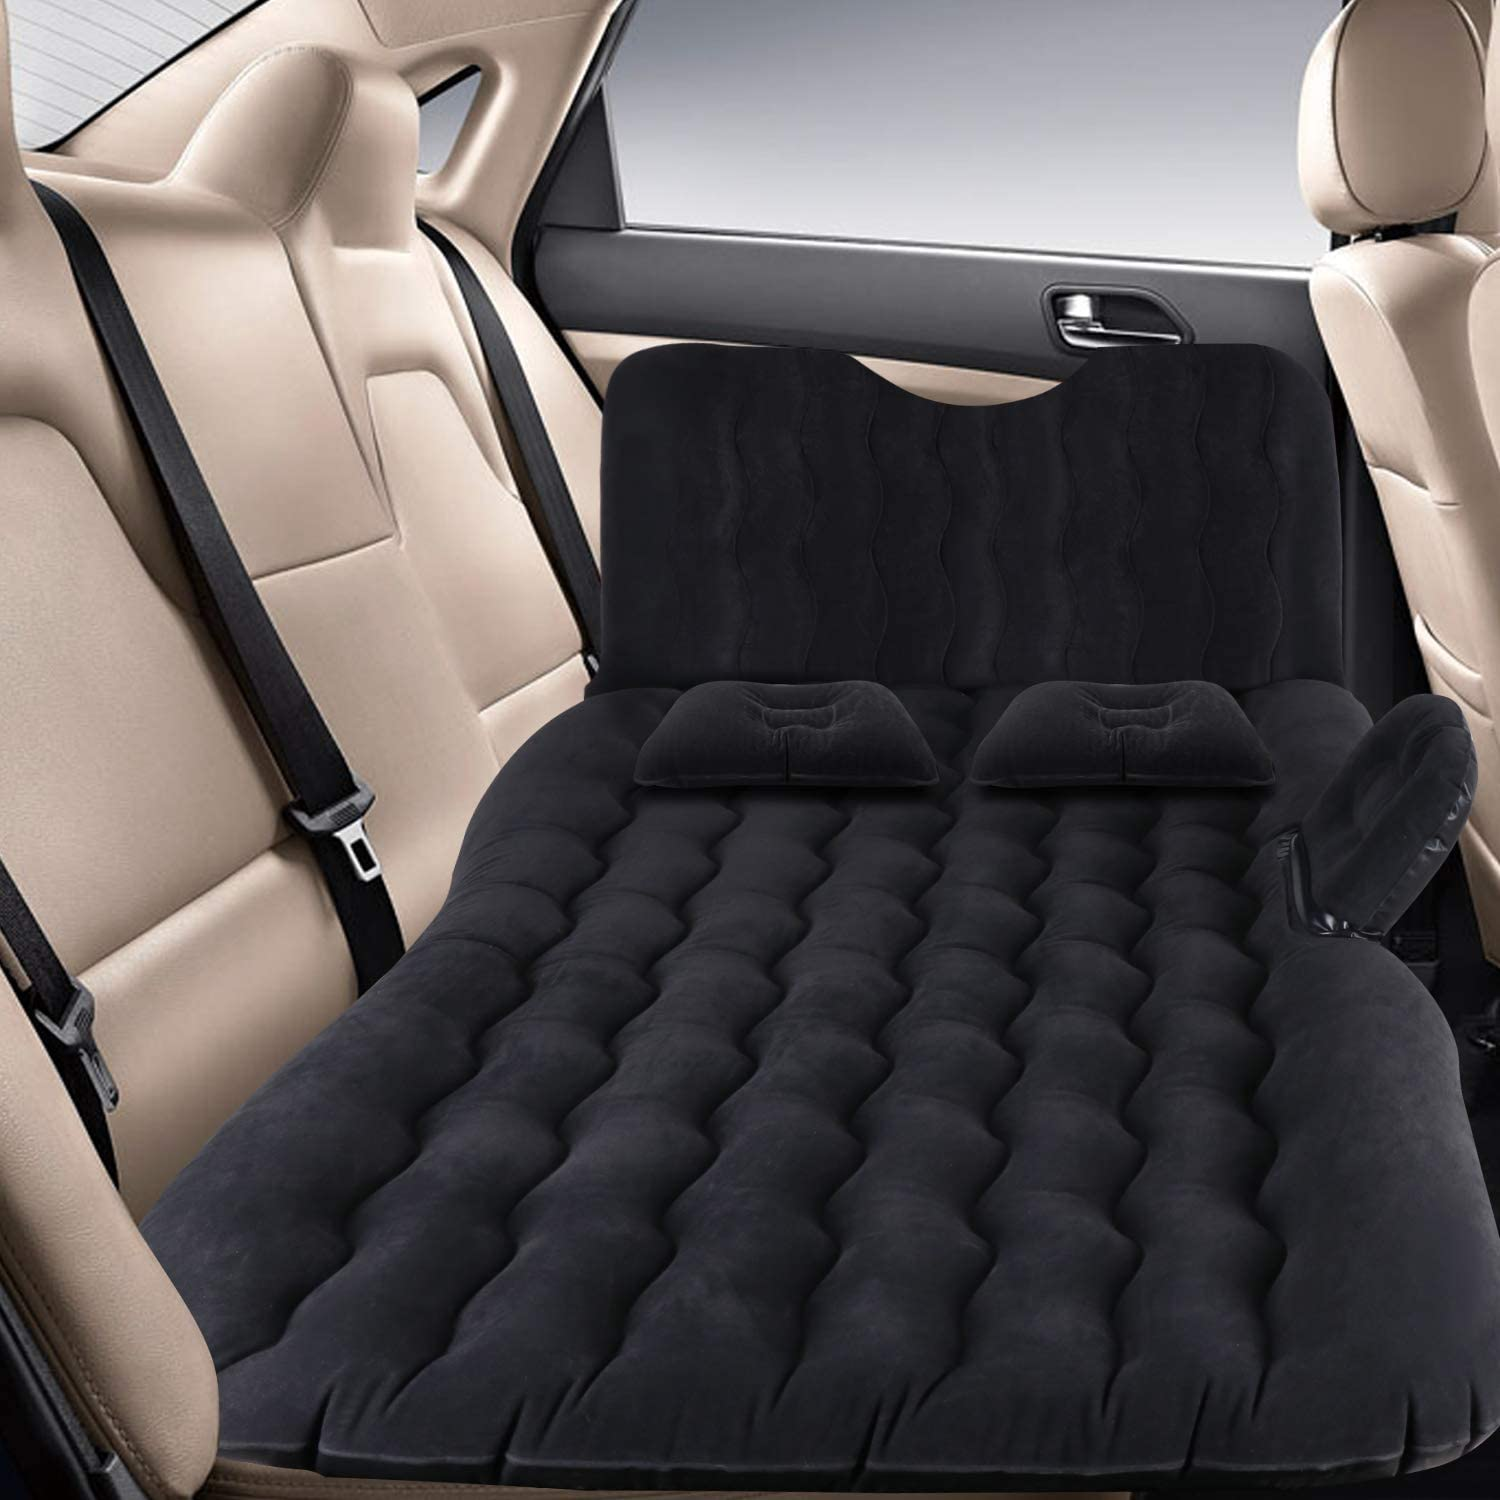 AAIWA Car Air Bed Inflatable Car Mattress Travel Bed with Backrest Pump Kit for Camping Portable Back Seat Sleeping Pad with 2 Pillows for Car SUV Truck